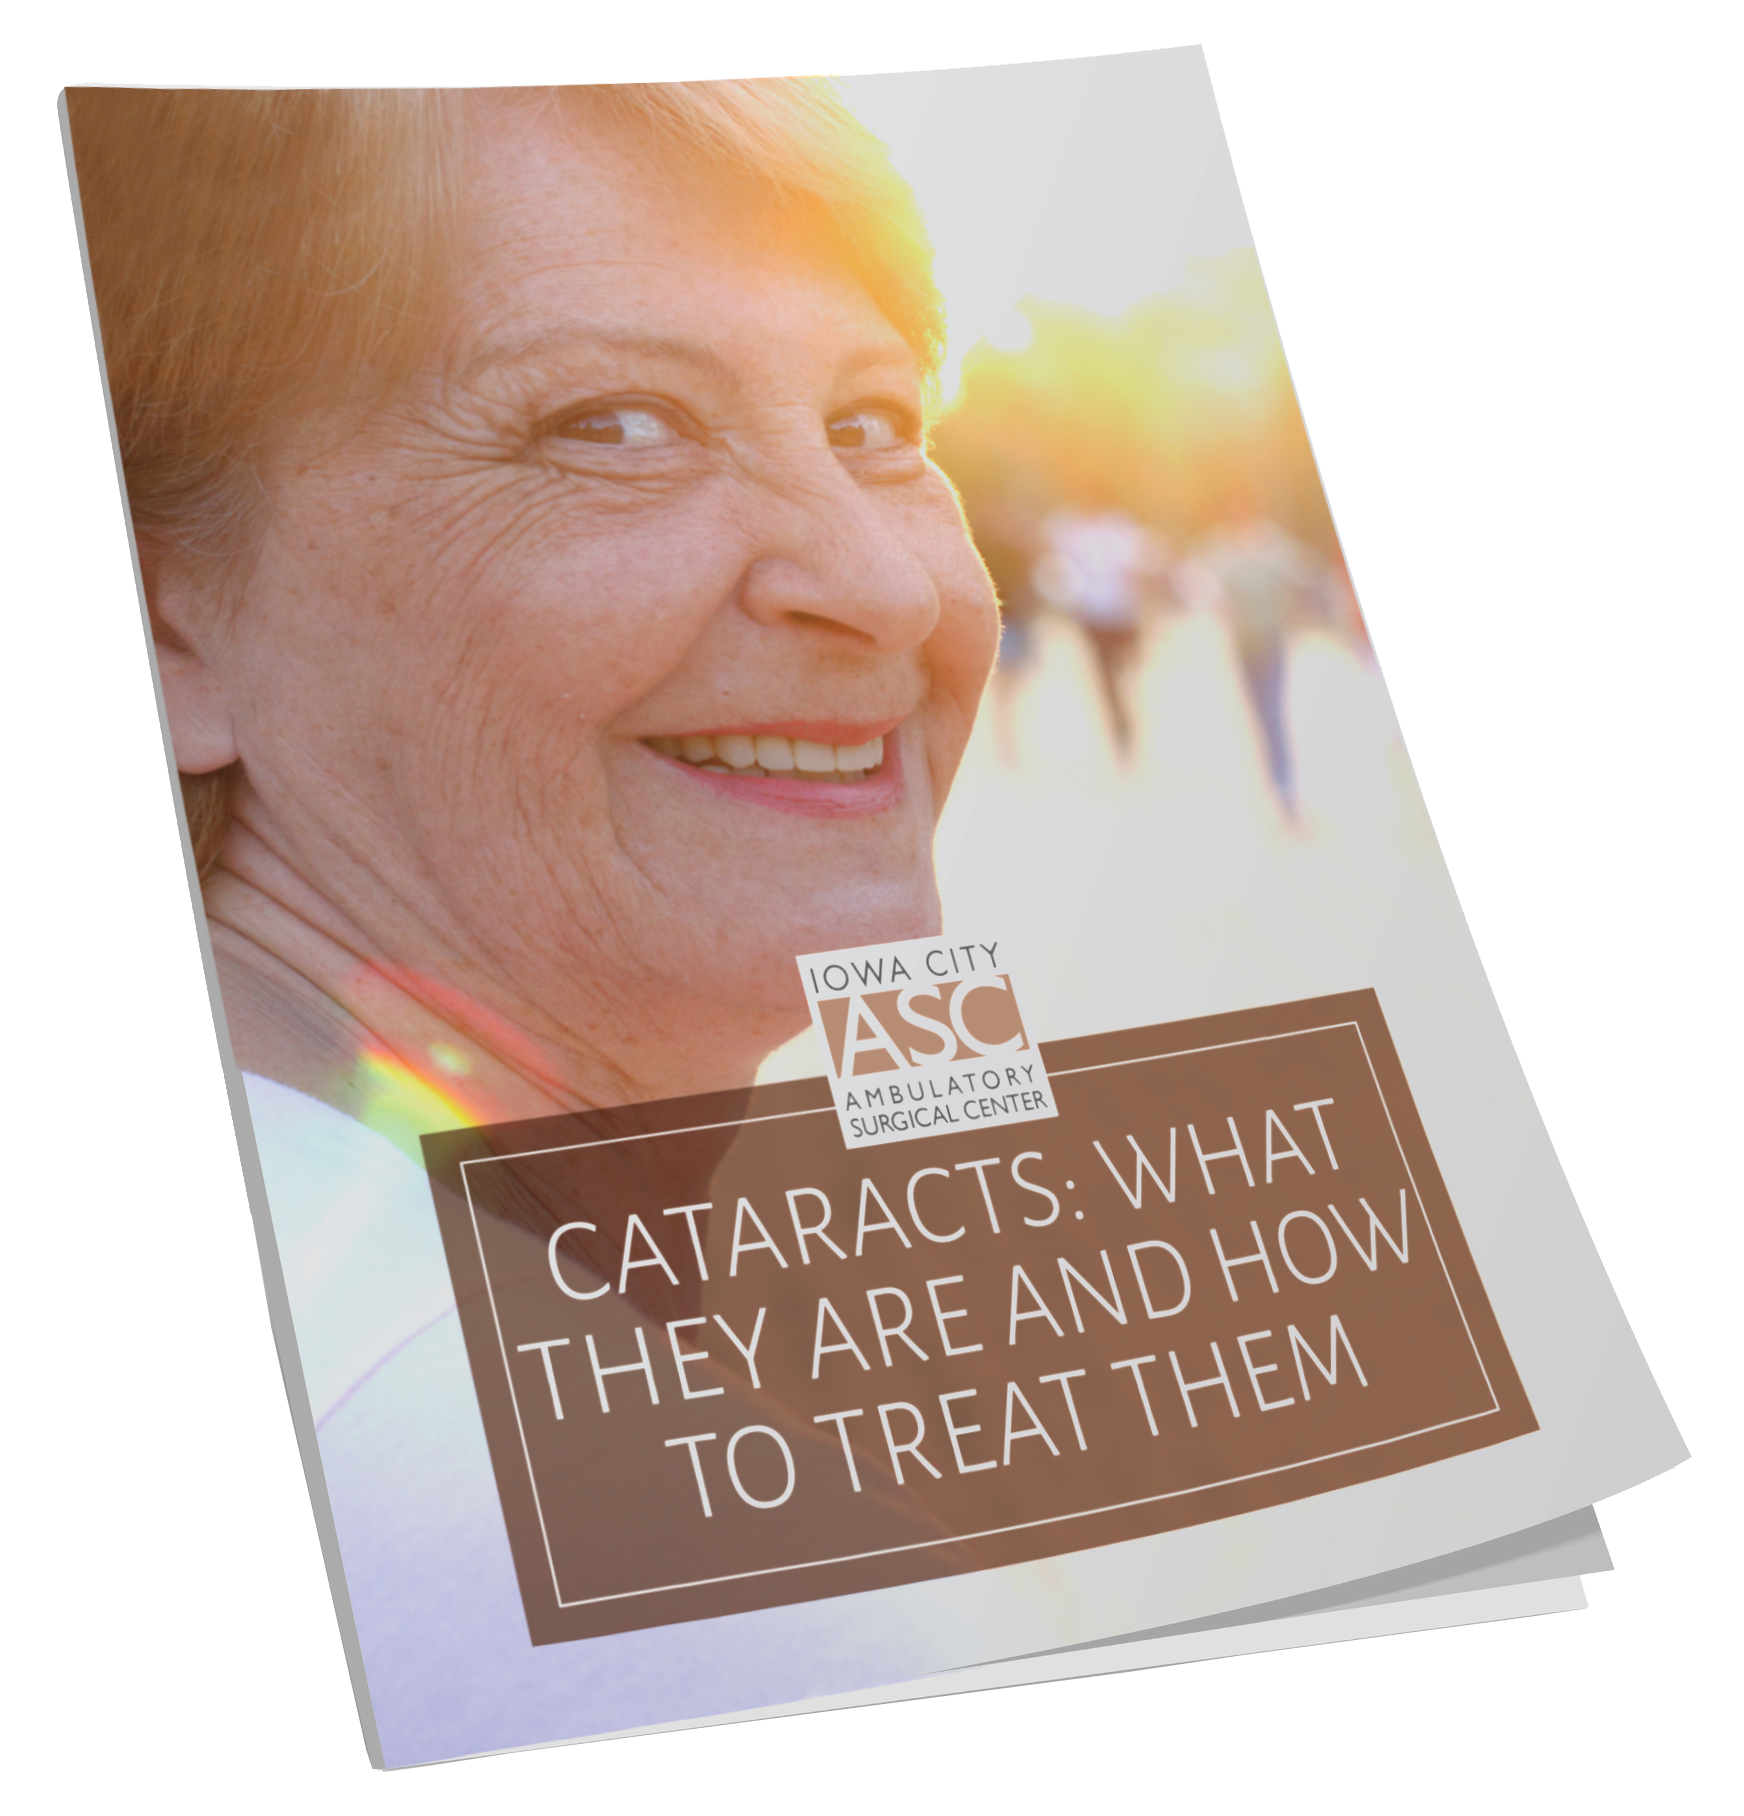 Cataracts: What They Are and How To Treat Them